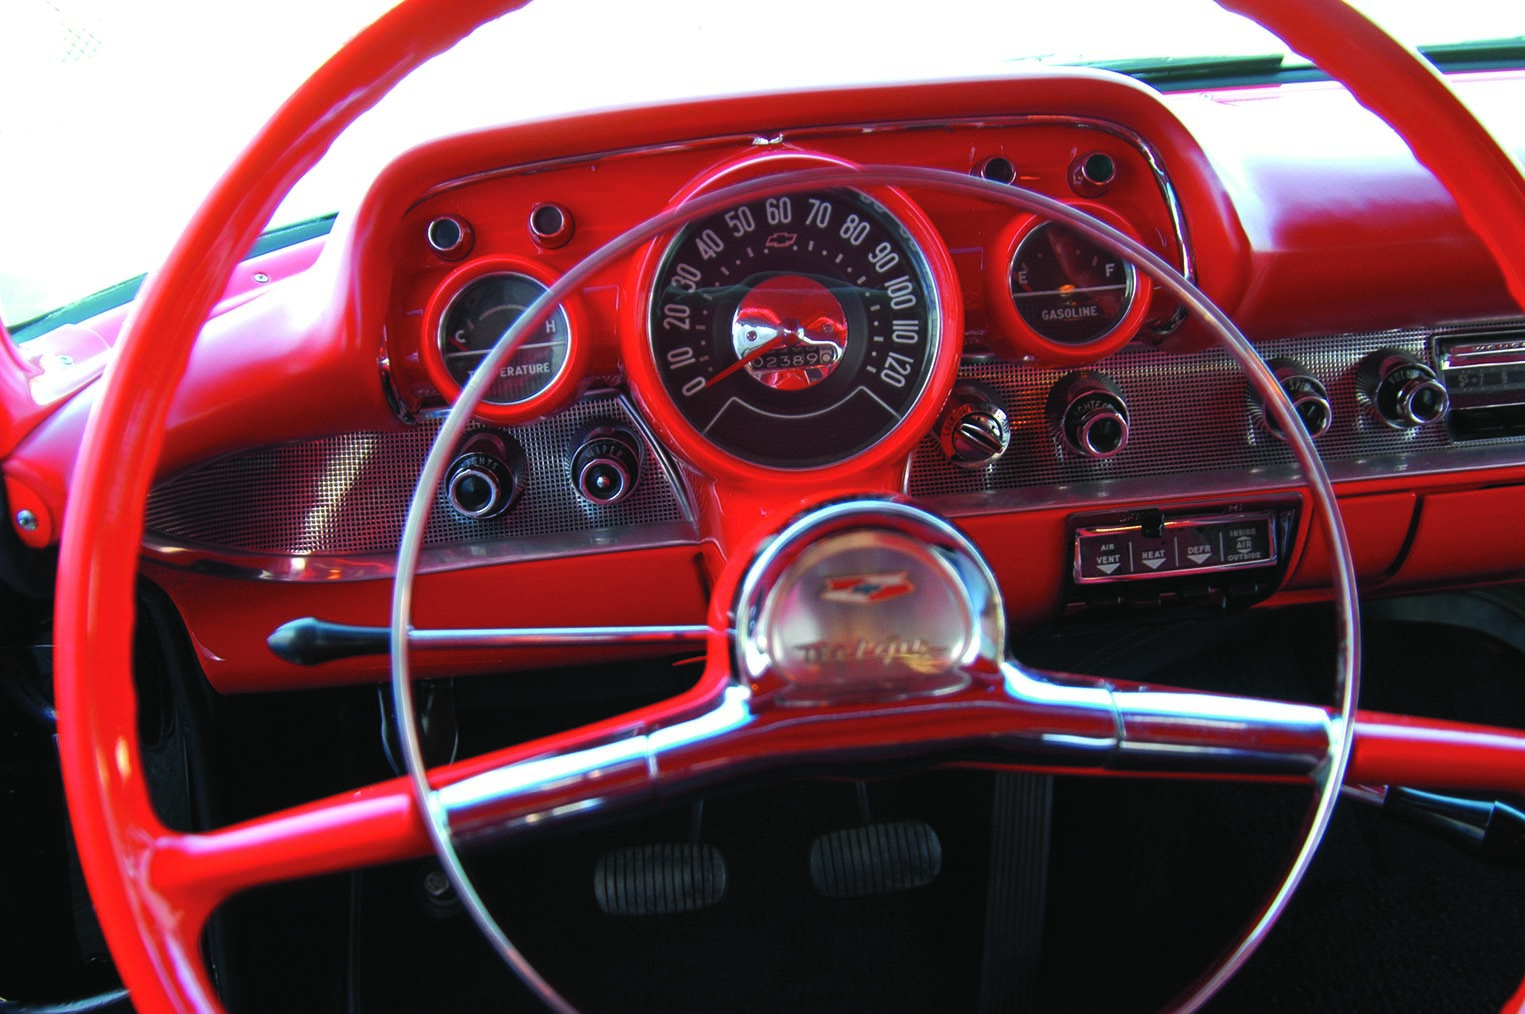 1957 Chevy Interior Dashboard and Wheel